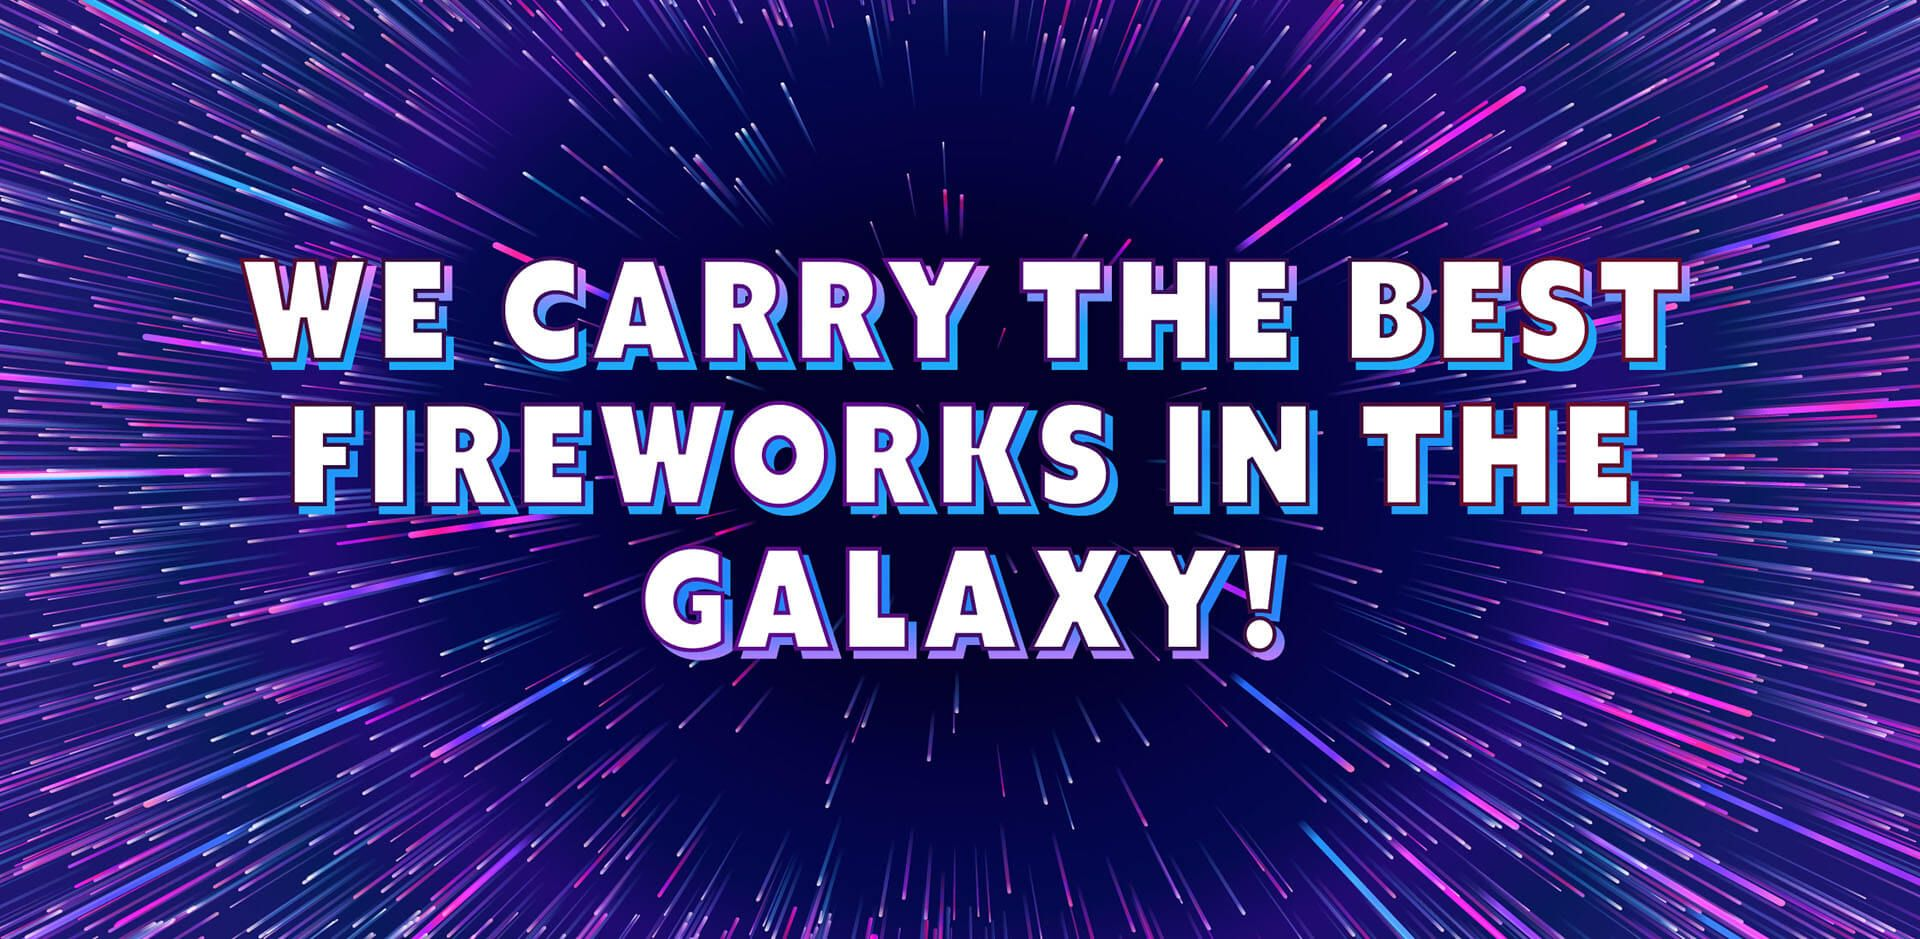 We Carry the Best Fireworks